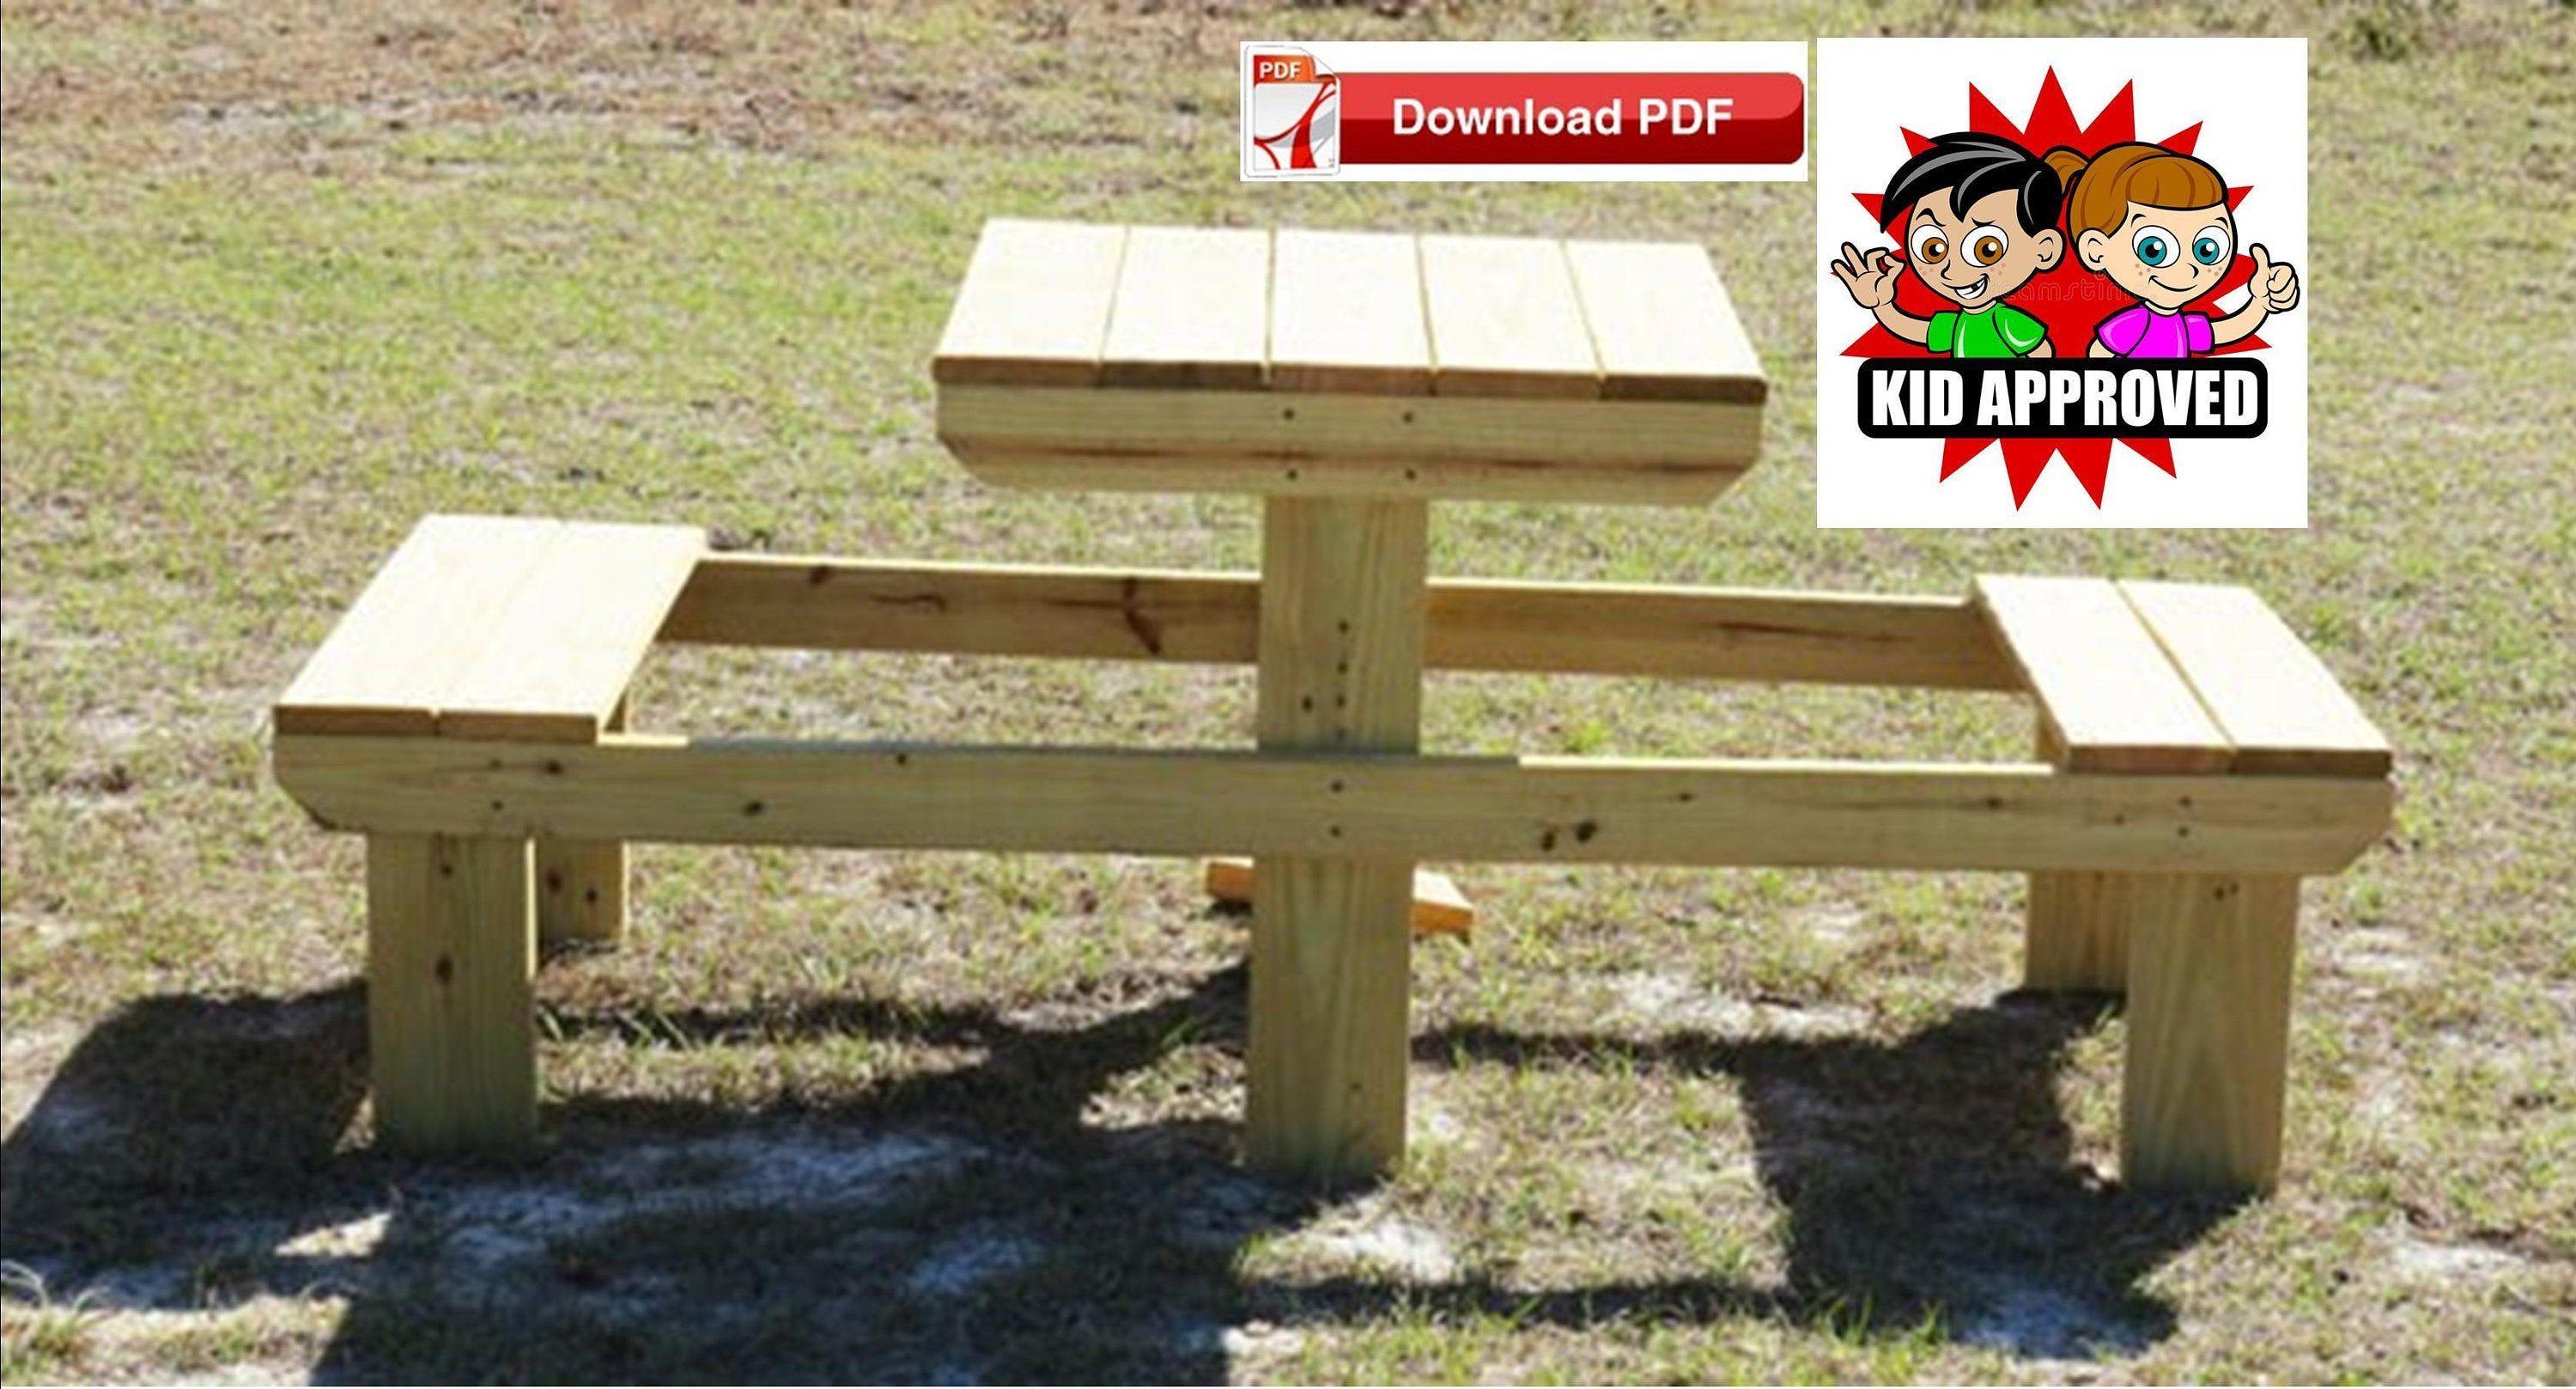 Small Picnic Table Plan Childrens Picnic Table Plan Mini Picnic Table Plan Compact Picnic Table Plan K In 2020 Kids Picnic Table Picnic Table Plans Outdoor Table Plans